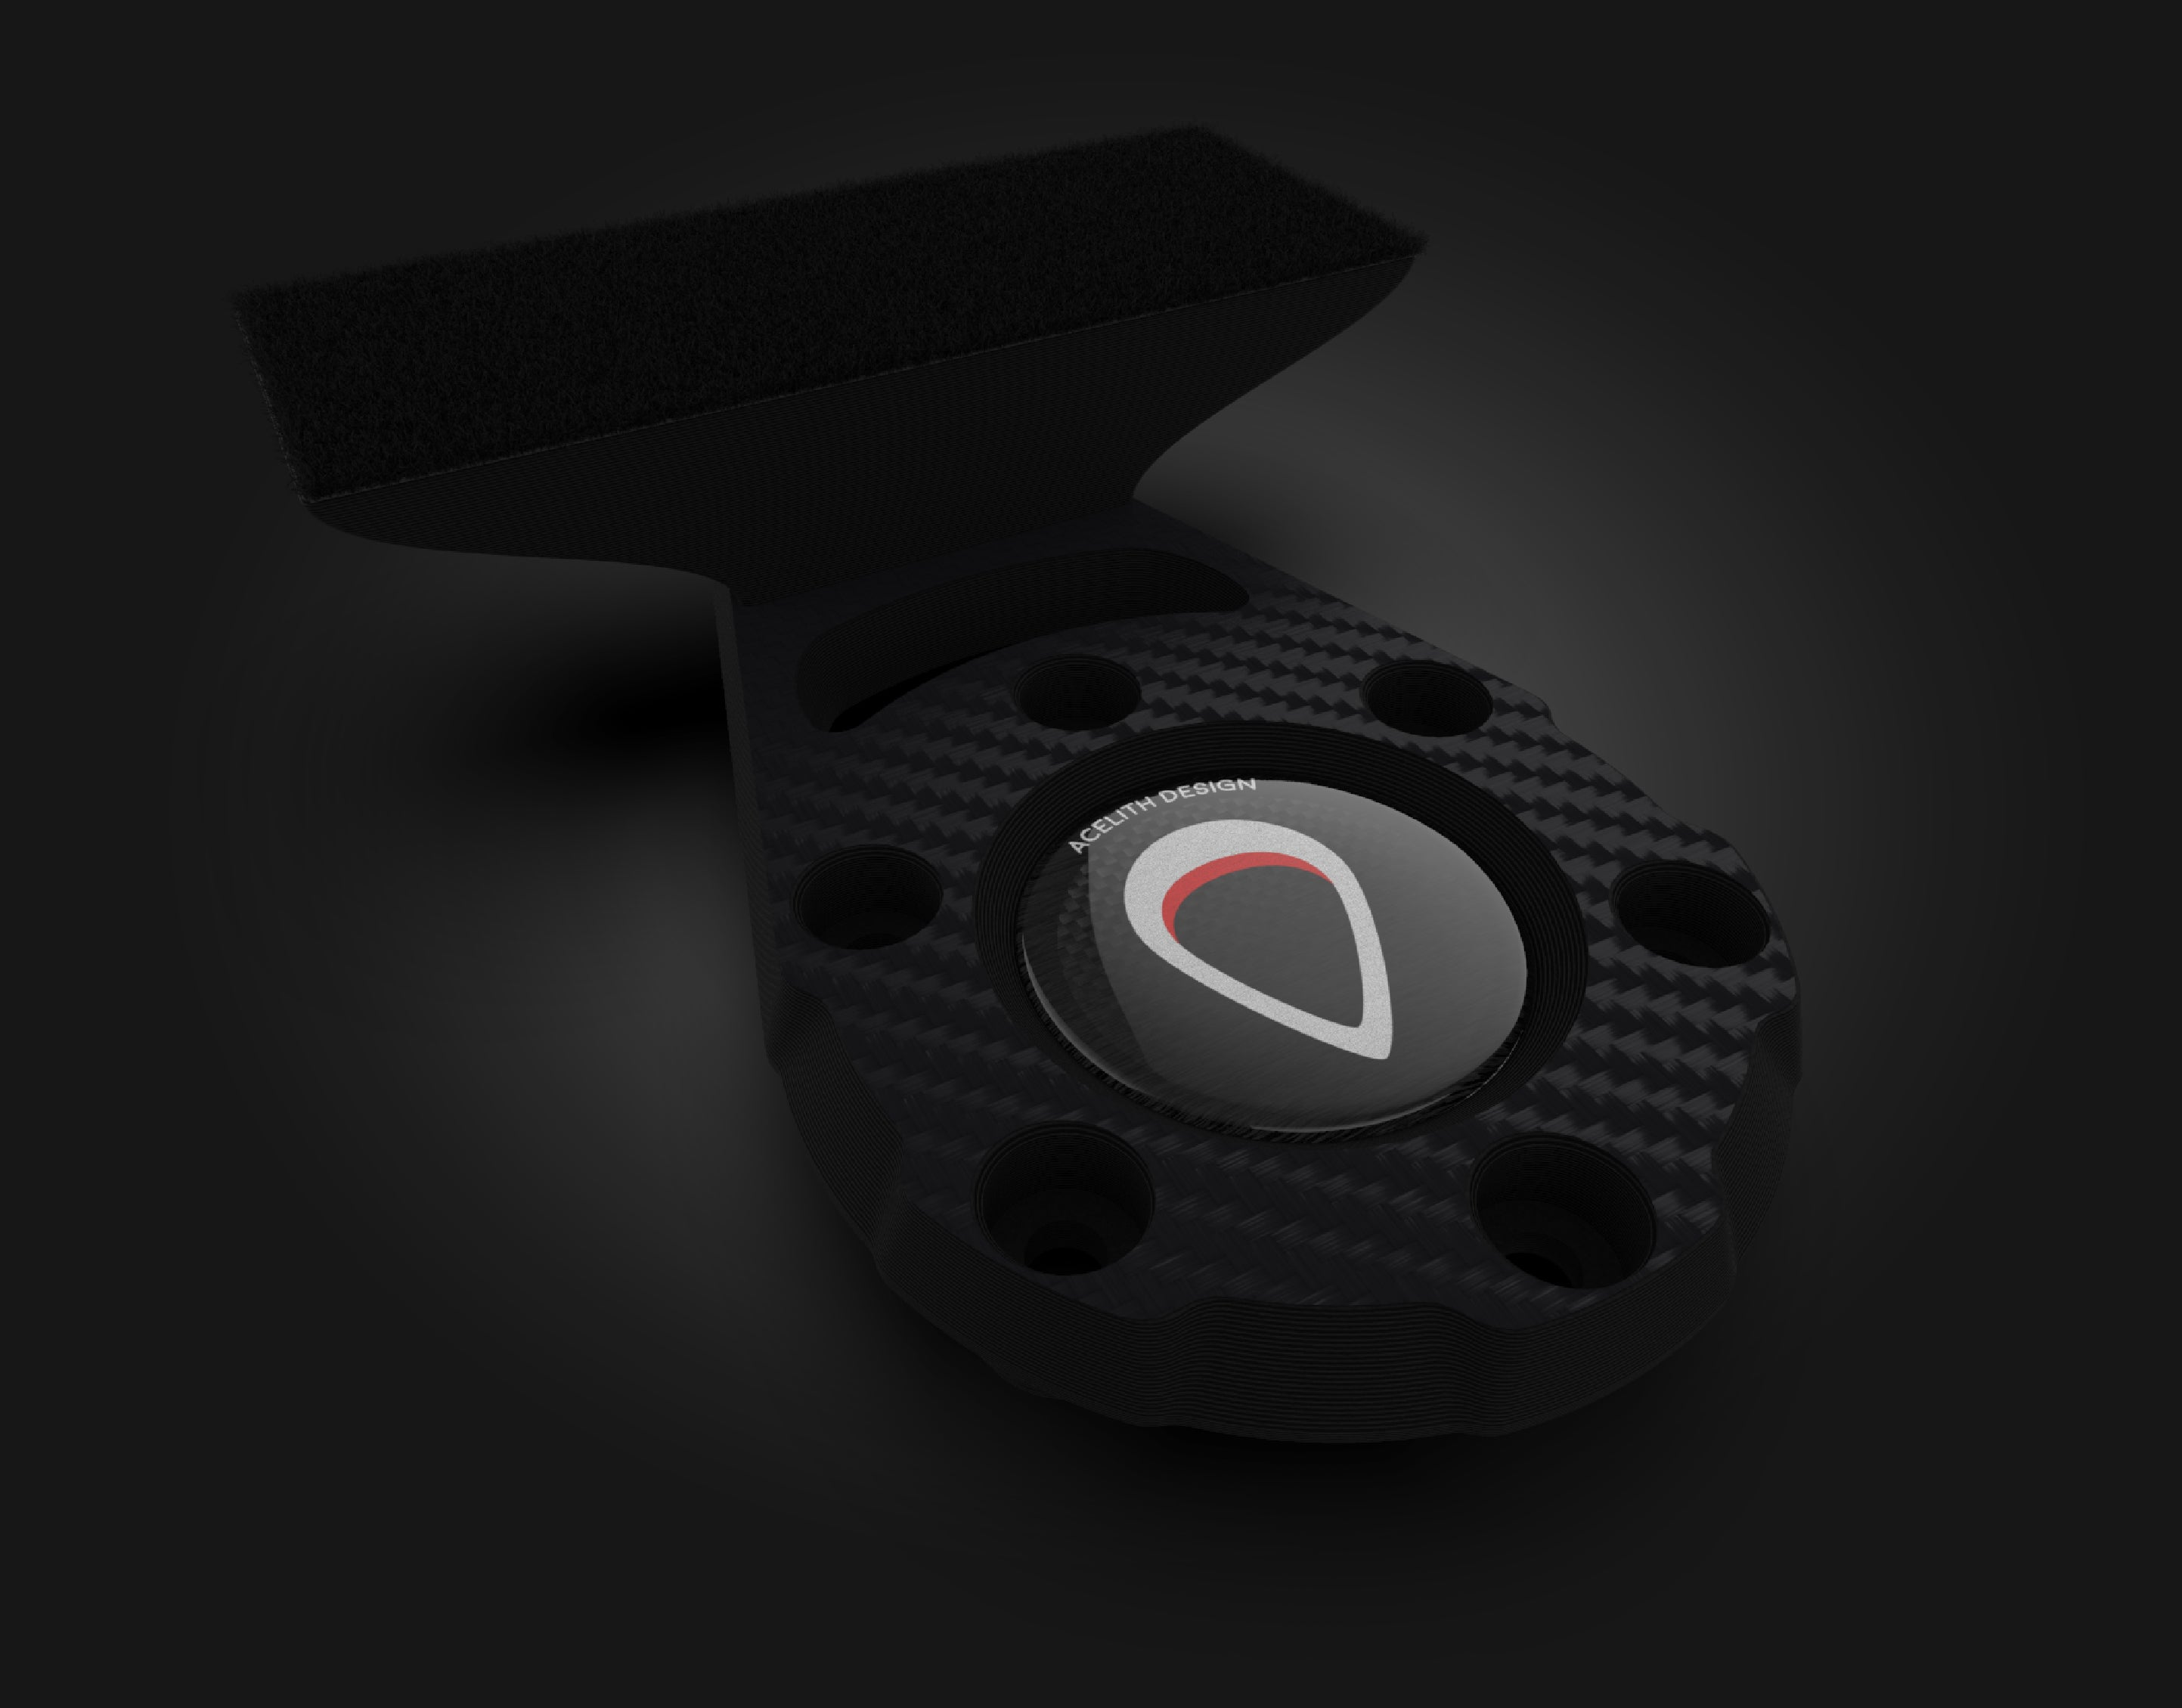 3D Model - Dashboard mod for Original G29\G920 wheel